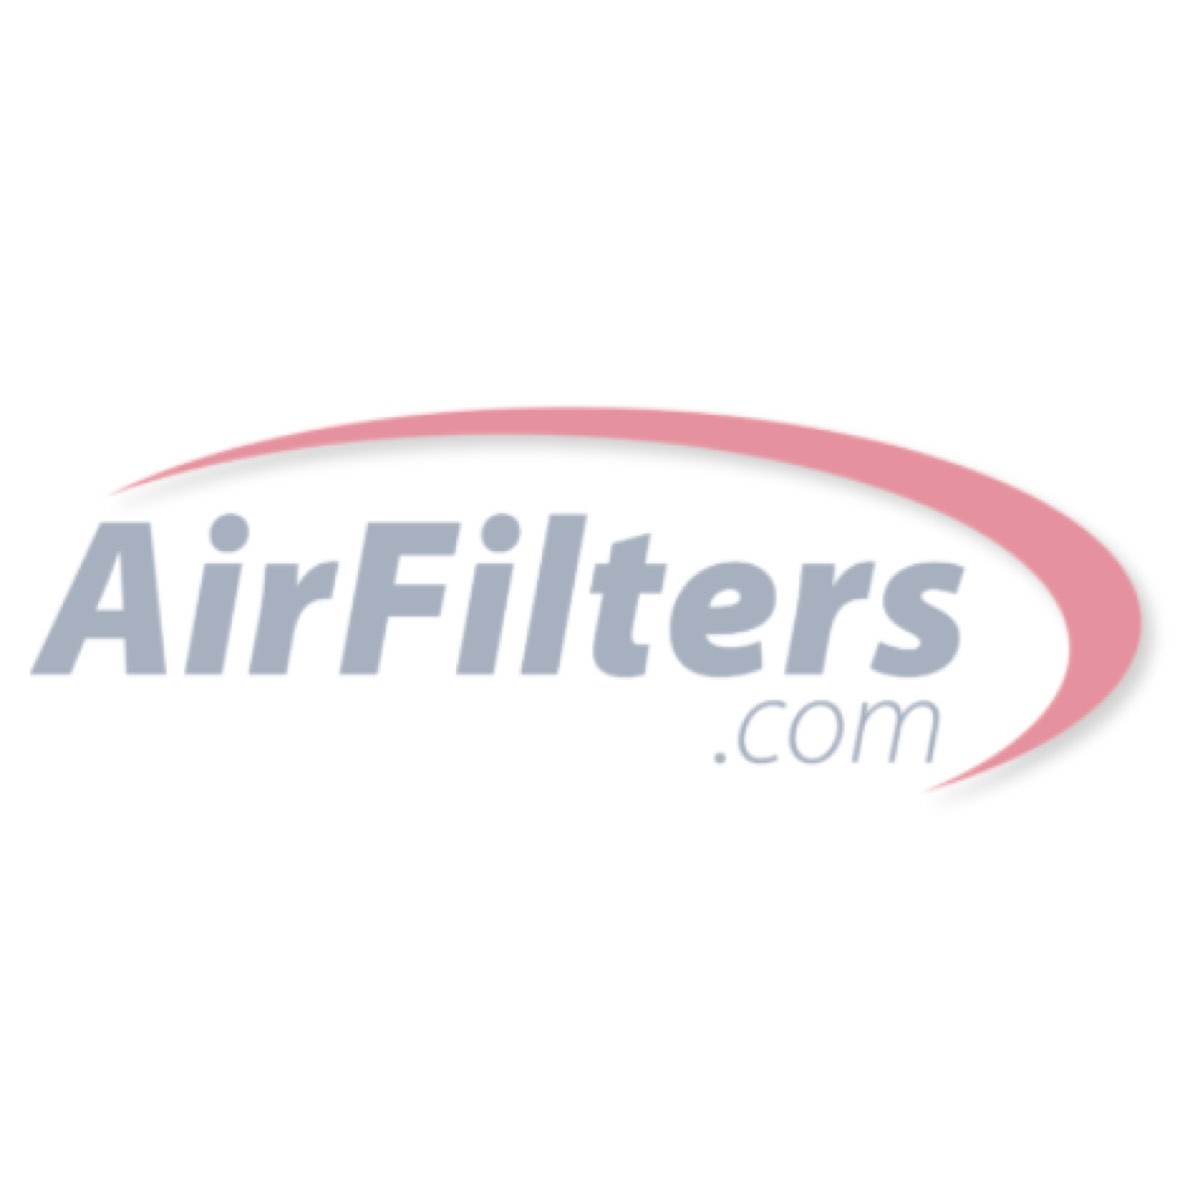 Aprilaire 201 Filter for Aprilaire 2200/2250 - 2 Pack